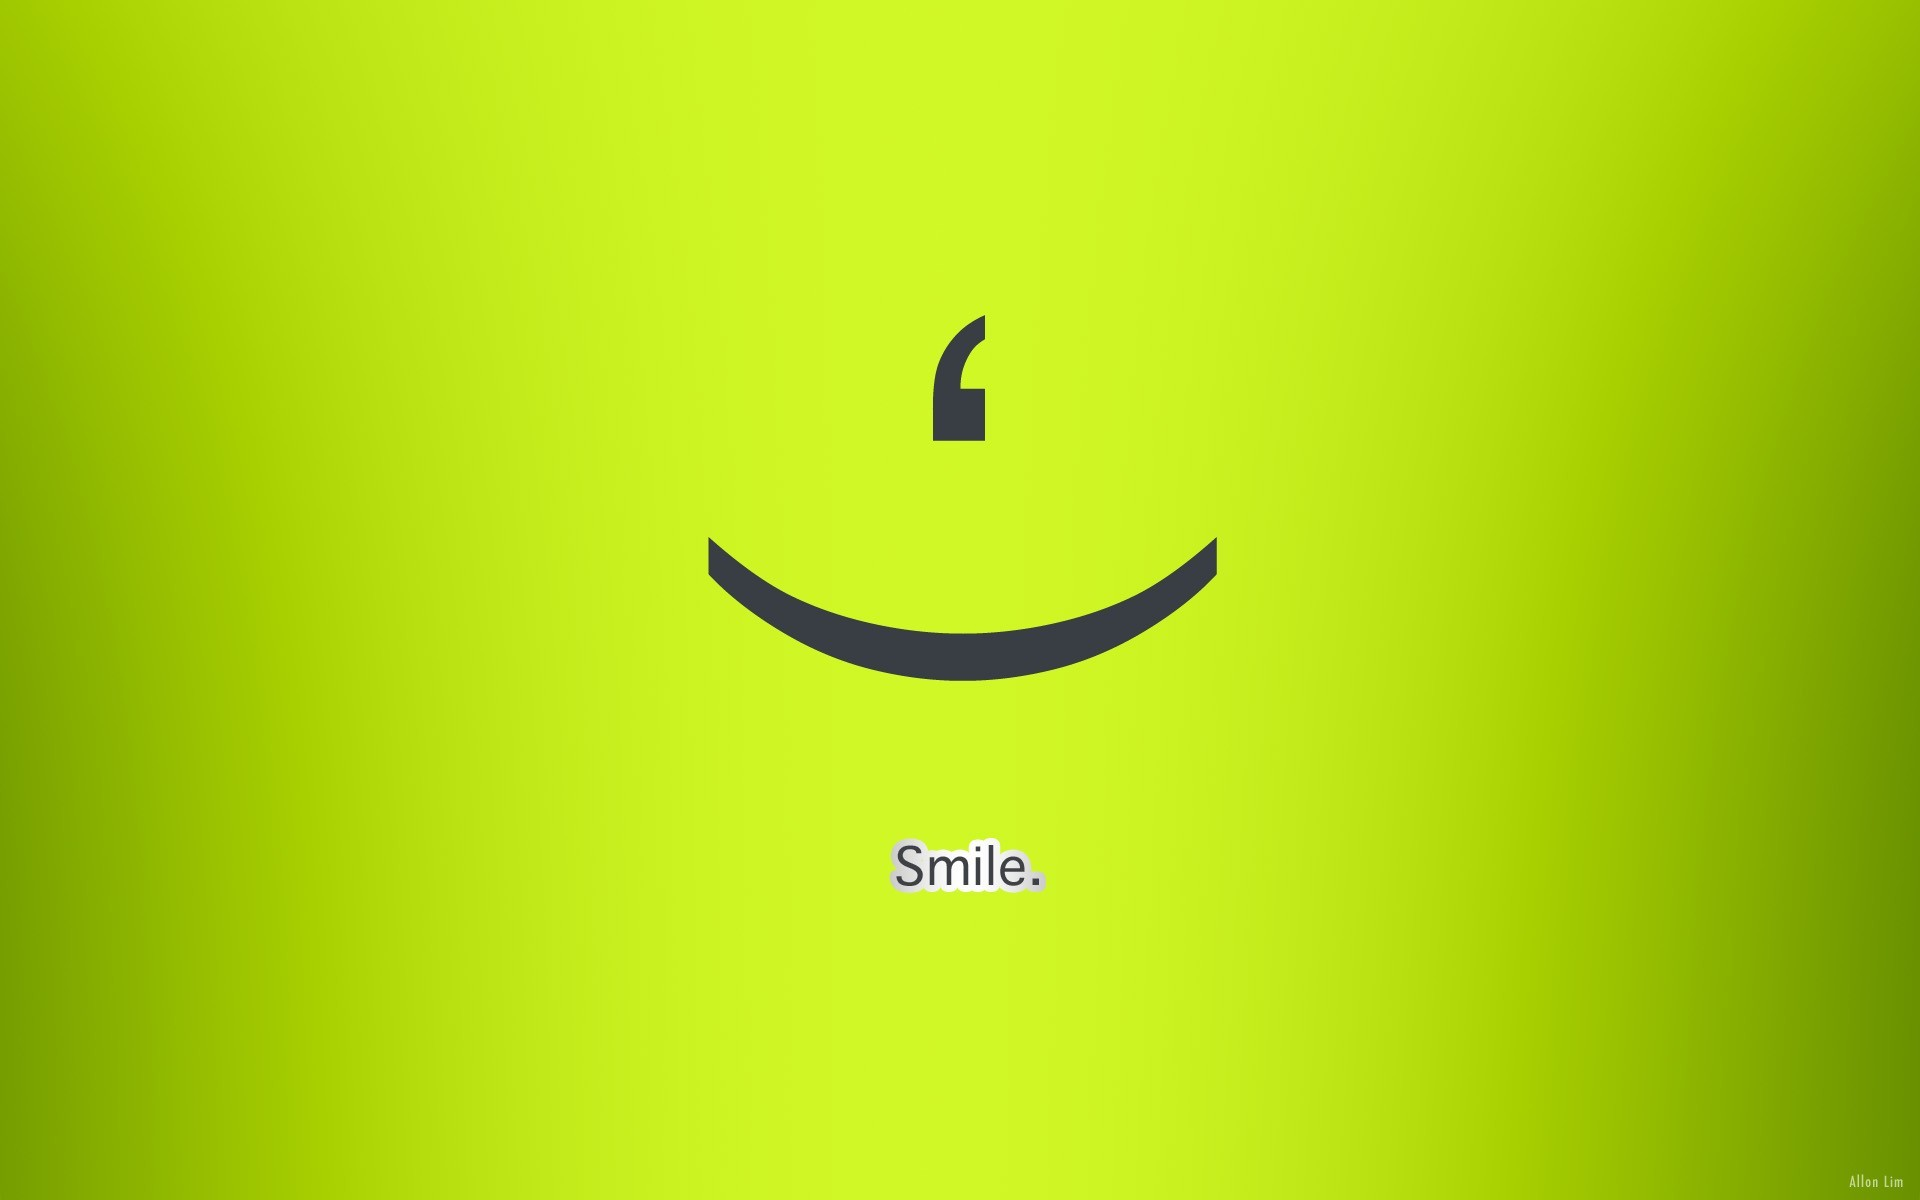 green text smiling simple background green background wallpaper …